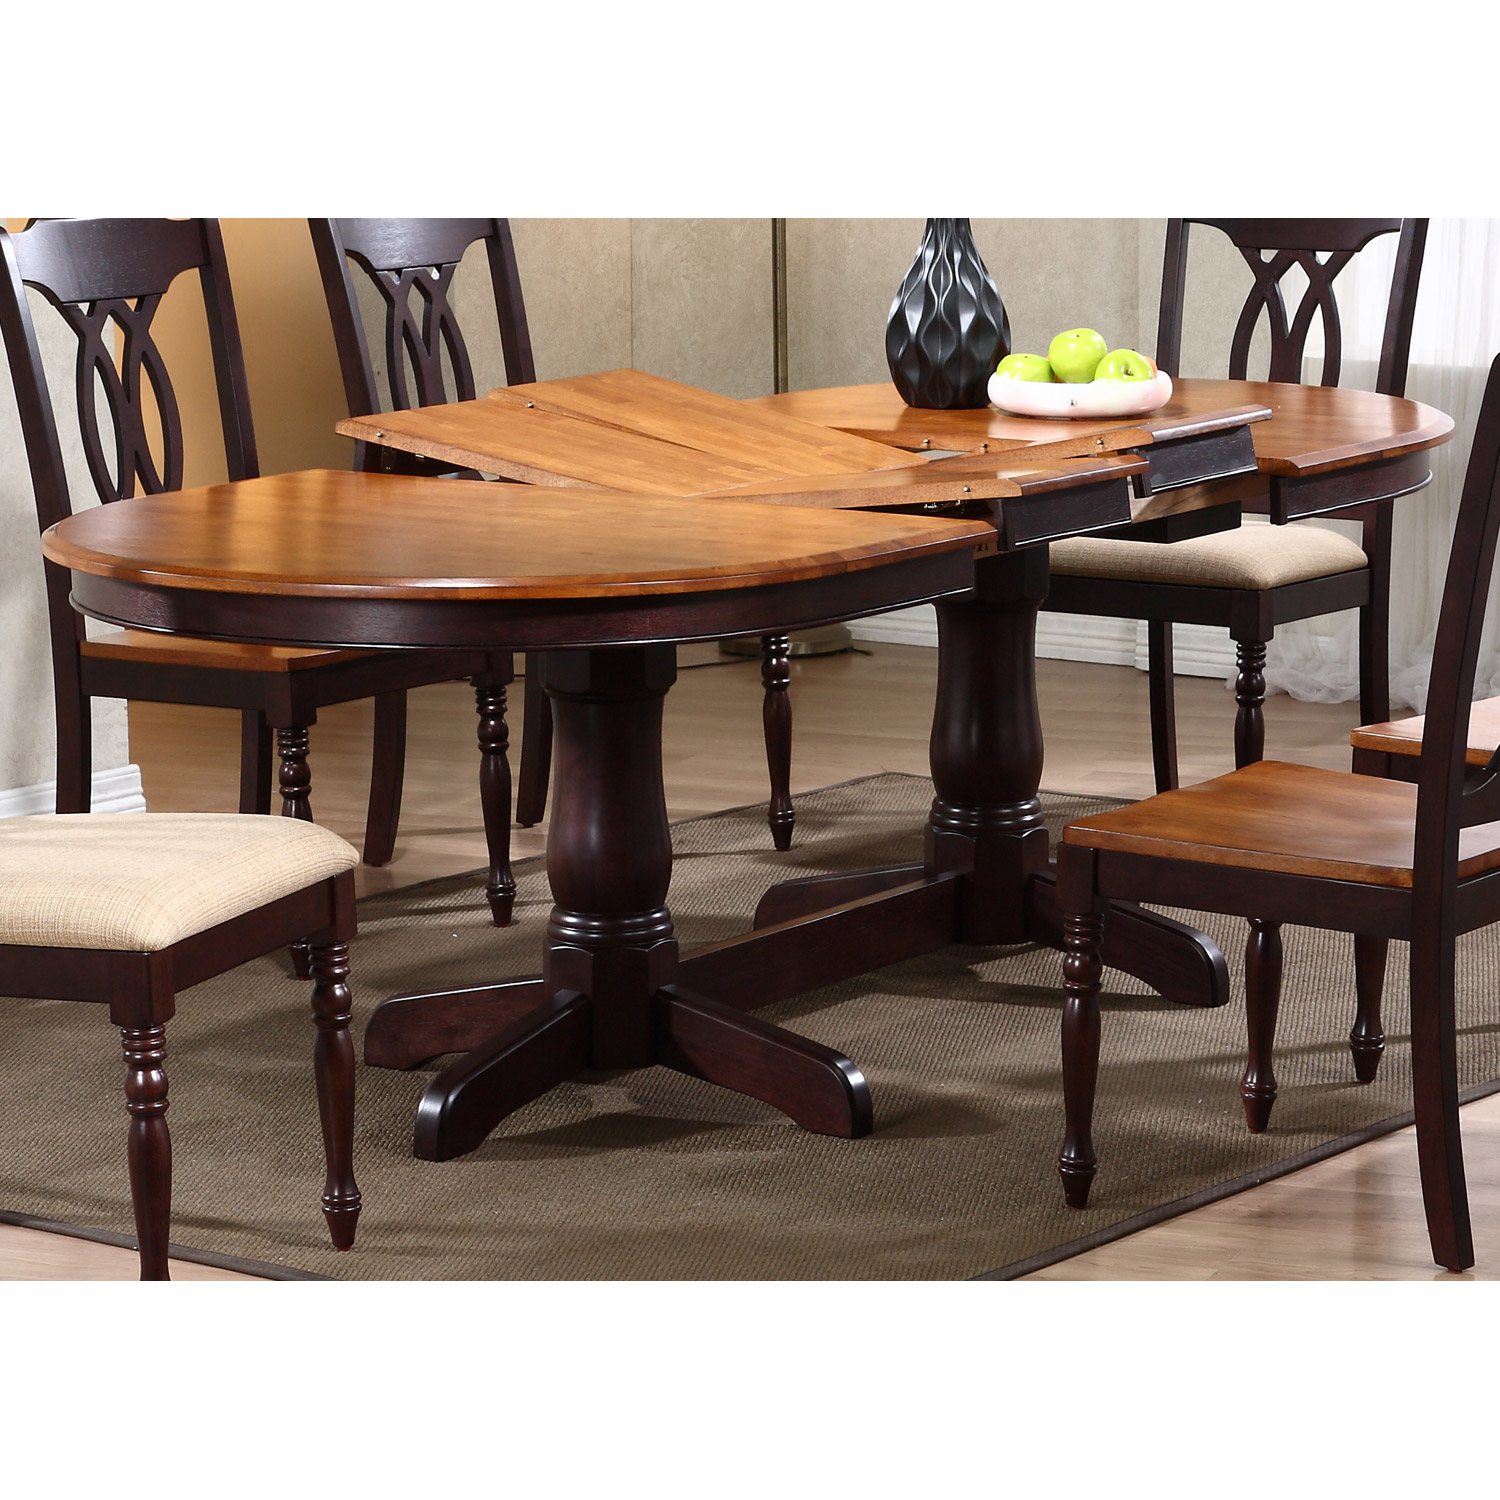 gatsby oval dining table double butterfly leaf whiskey. Black Bedroom Furniture Sets. Home Design Ideas